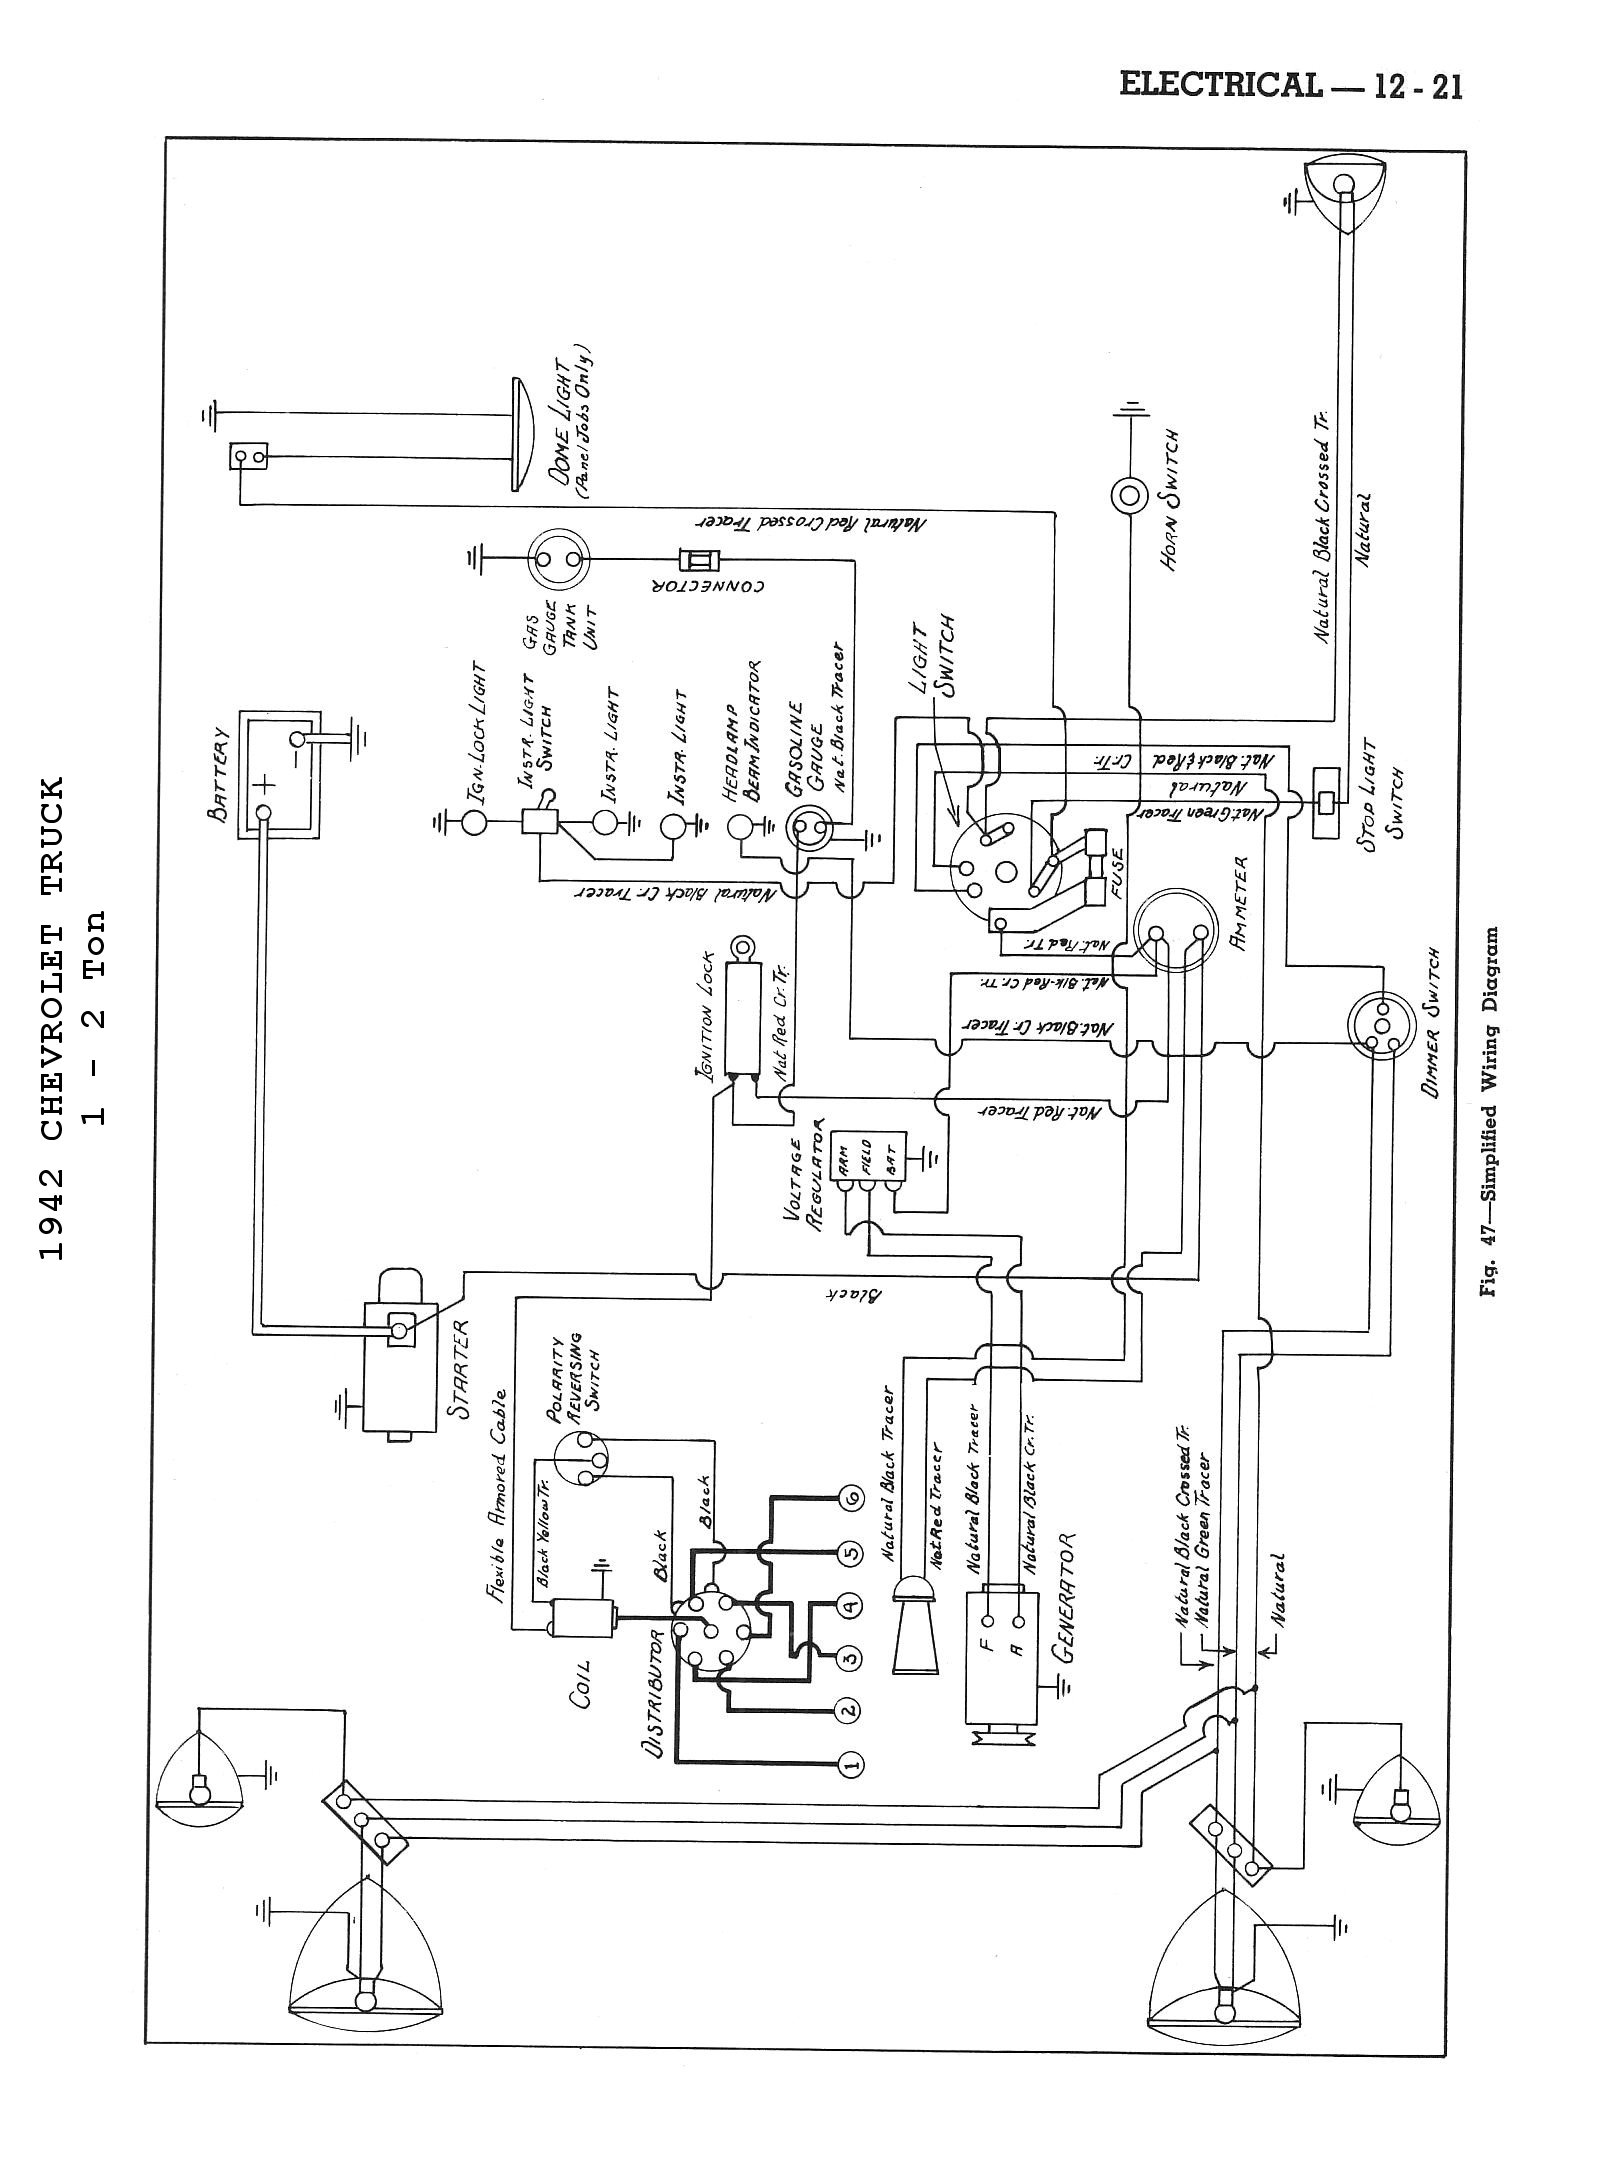 1941 plymouth wiring diagram